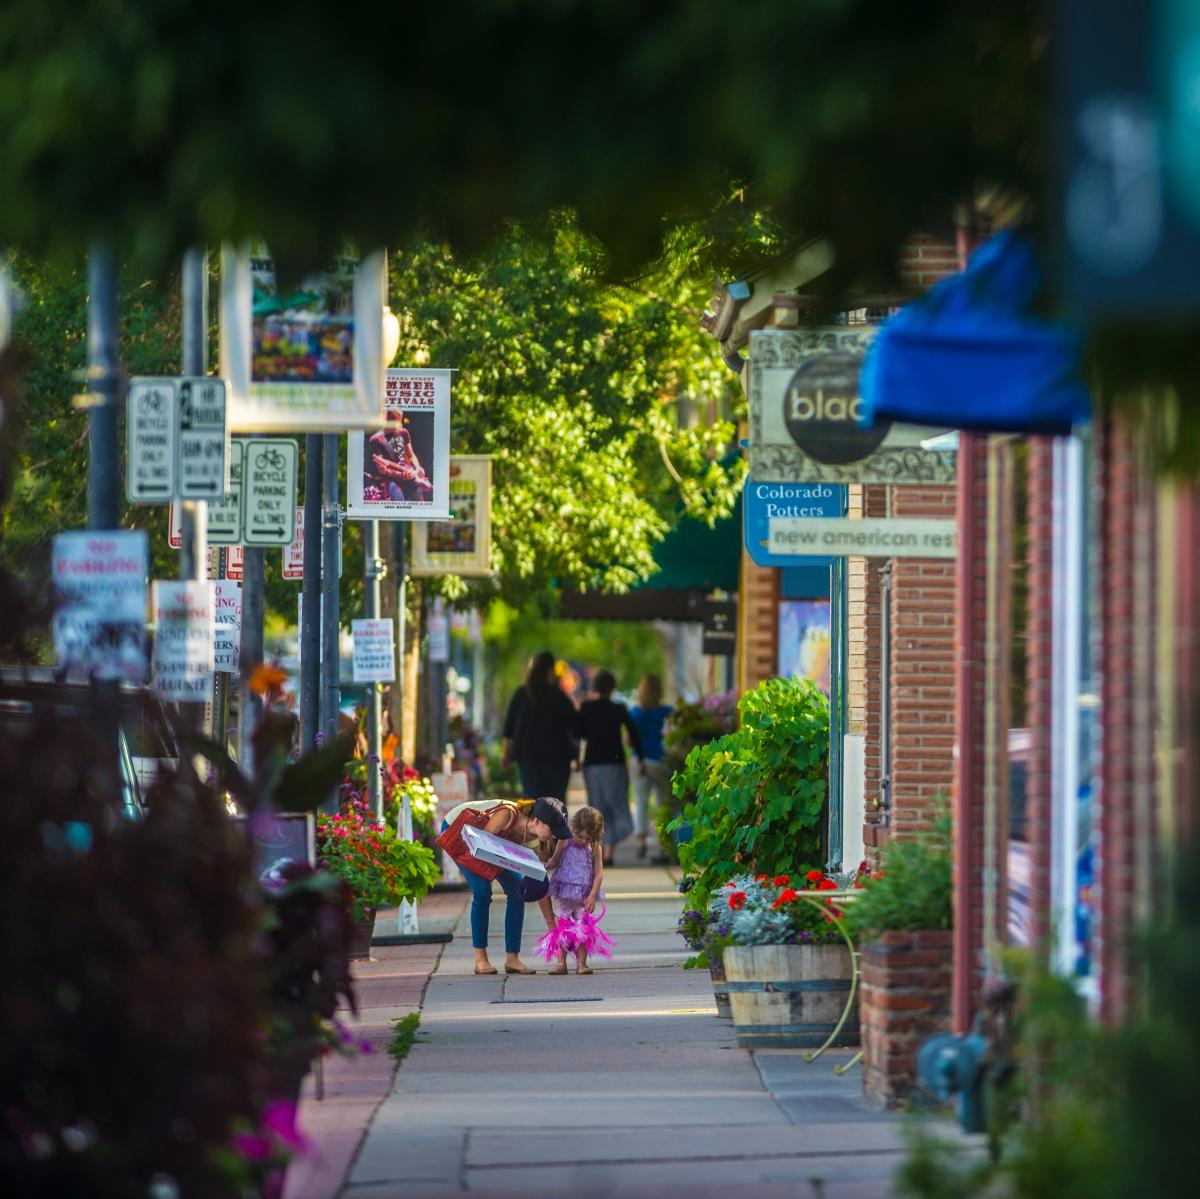 Old South Pearl Street shoppers